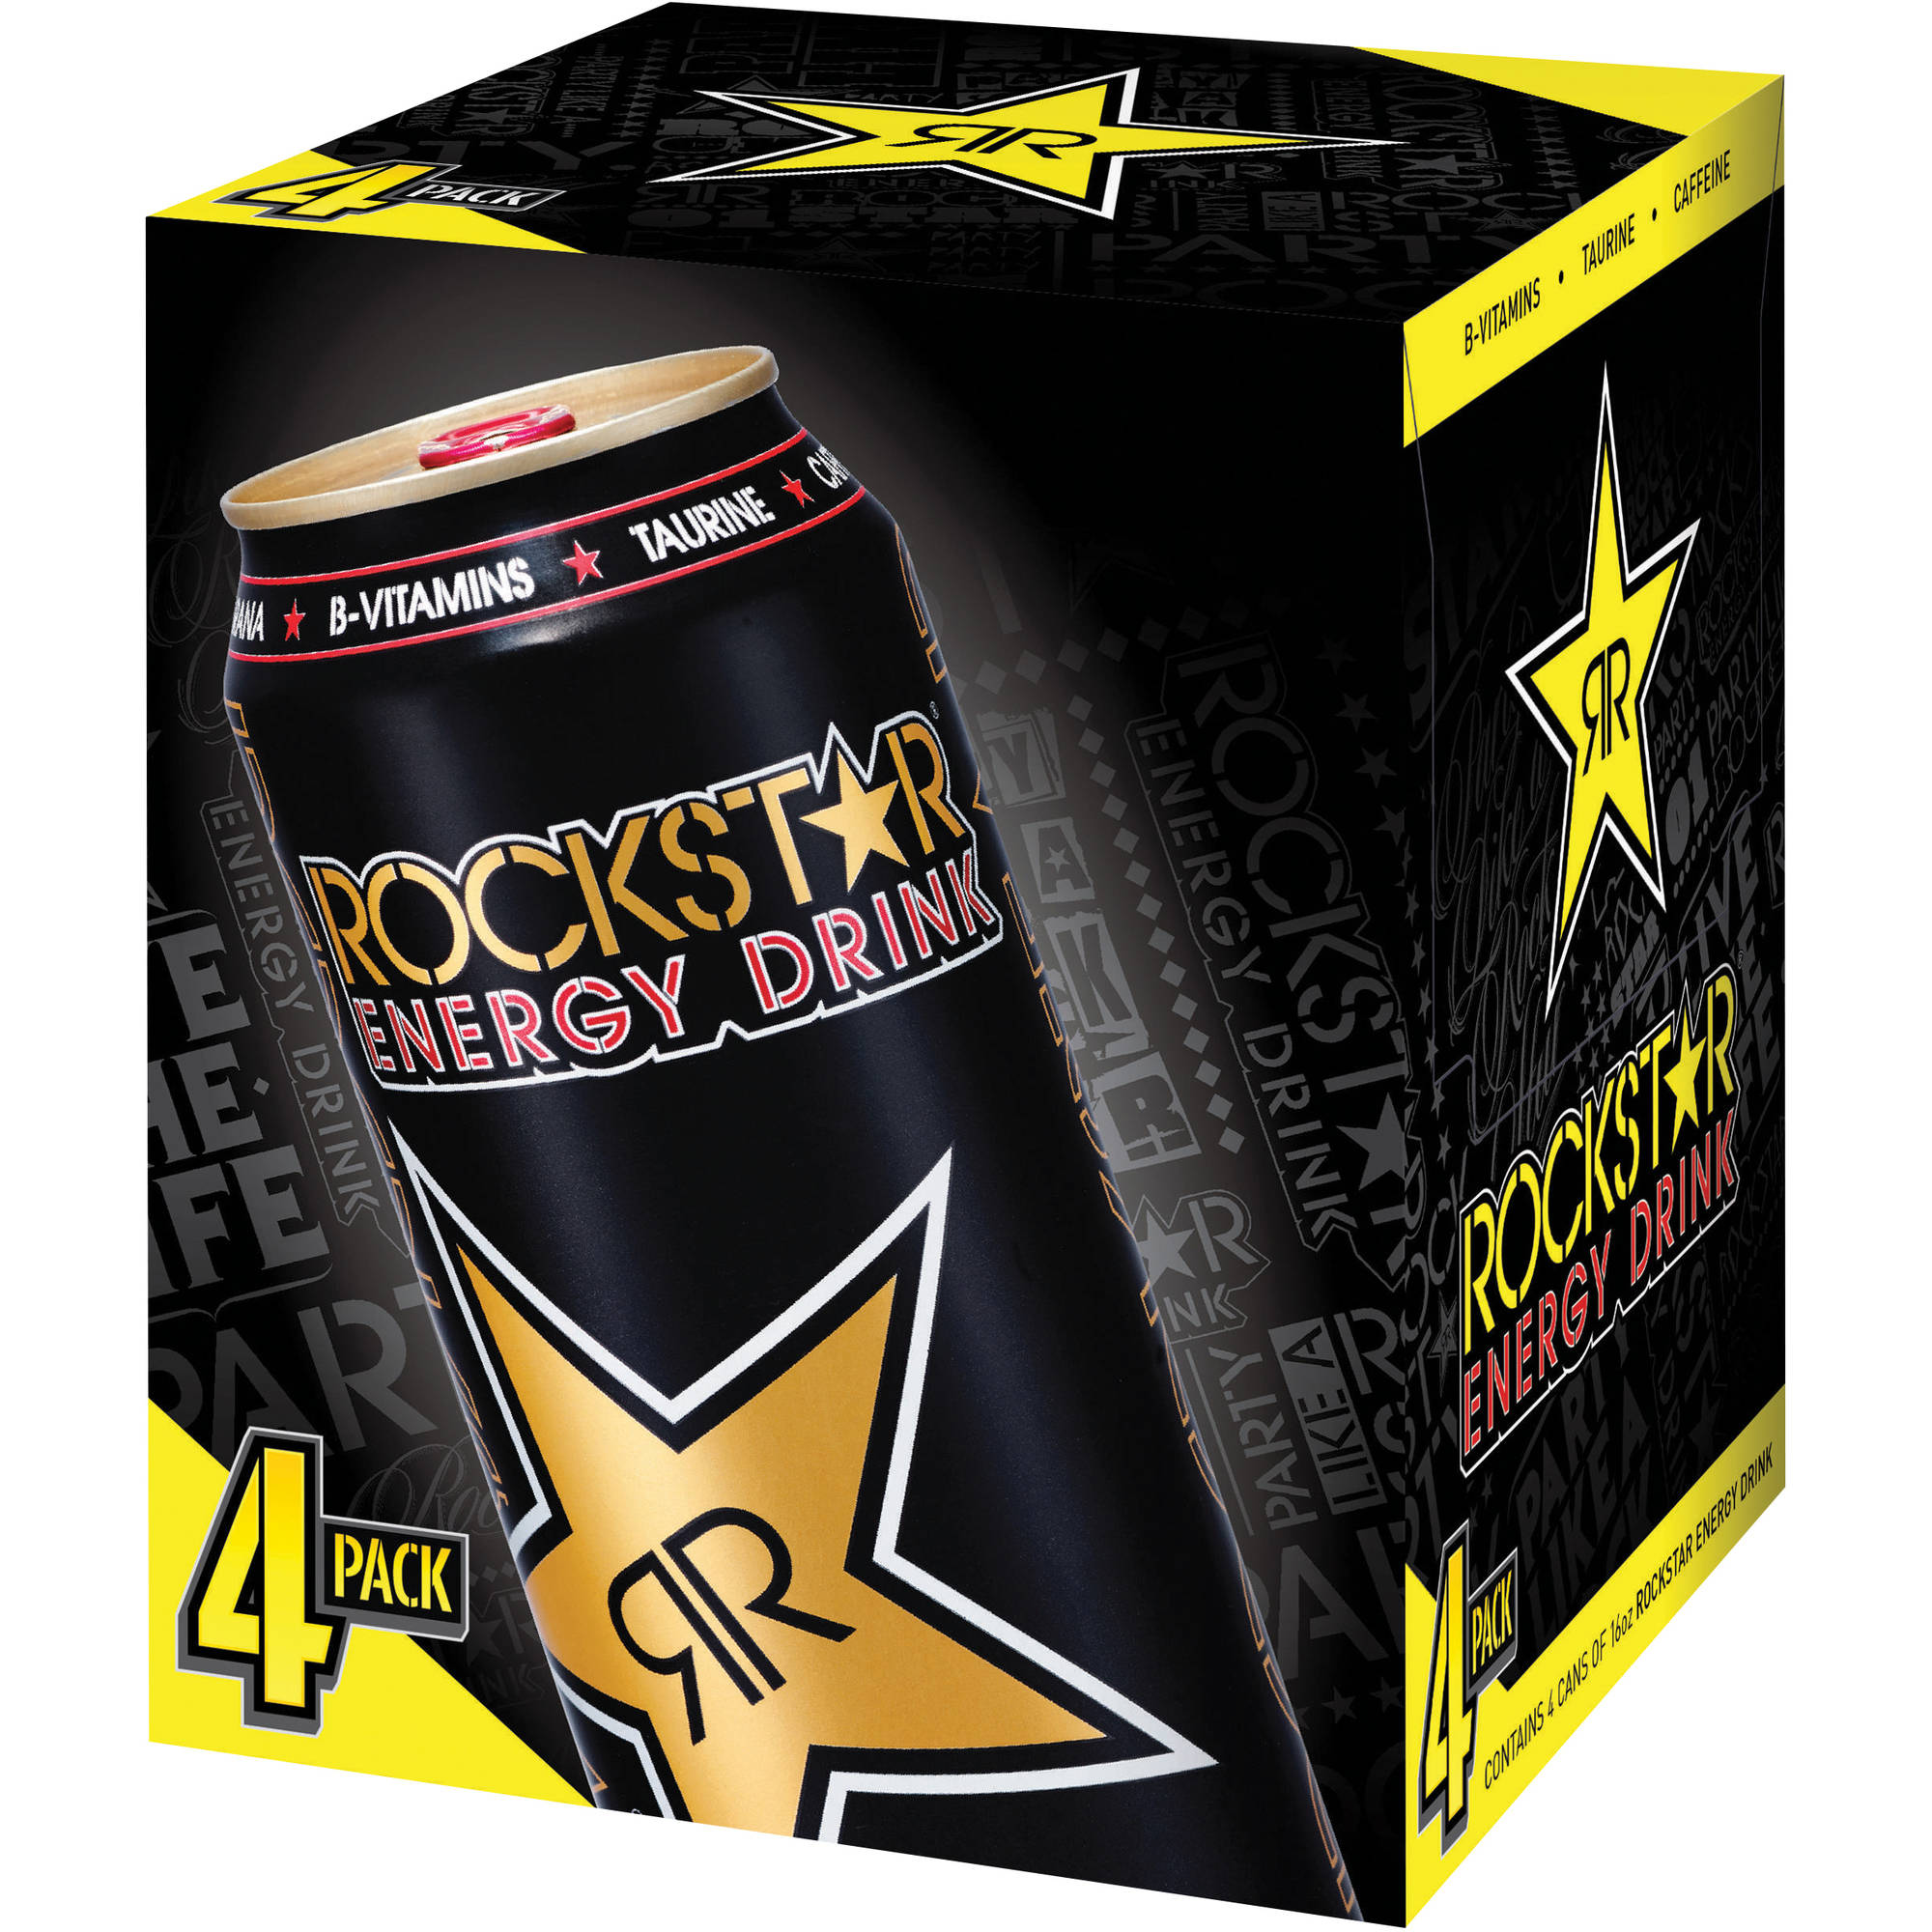 ROCKSTAR Original Energy Drink, 16 fl oz, 4 pack